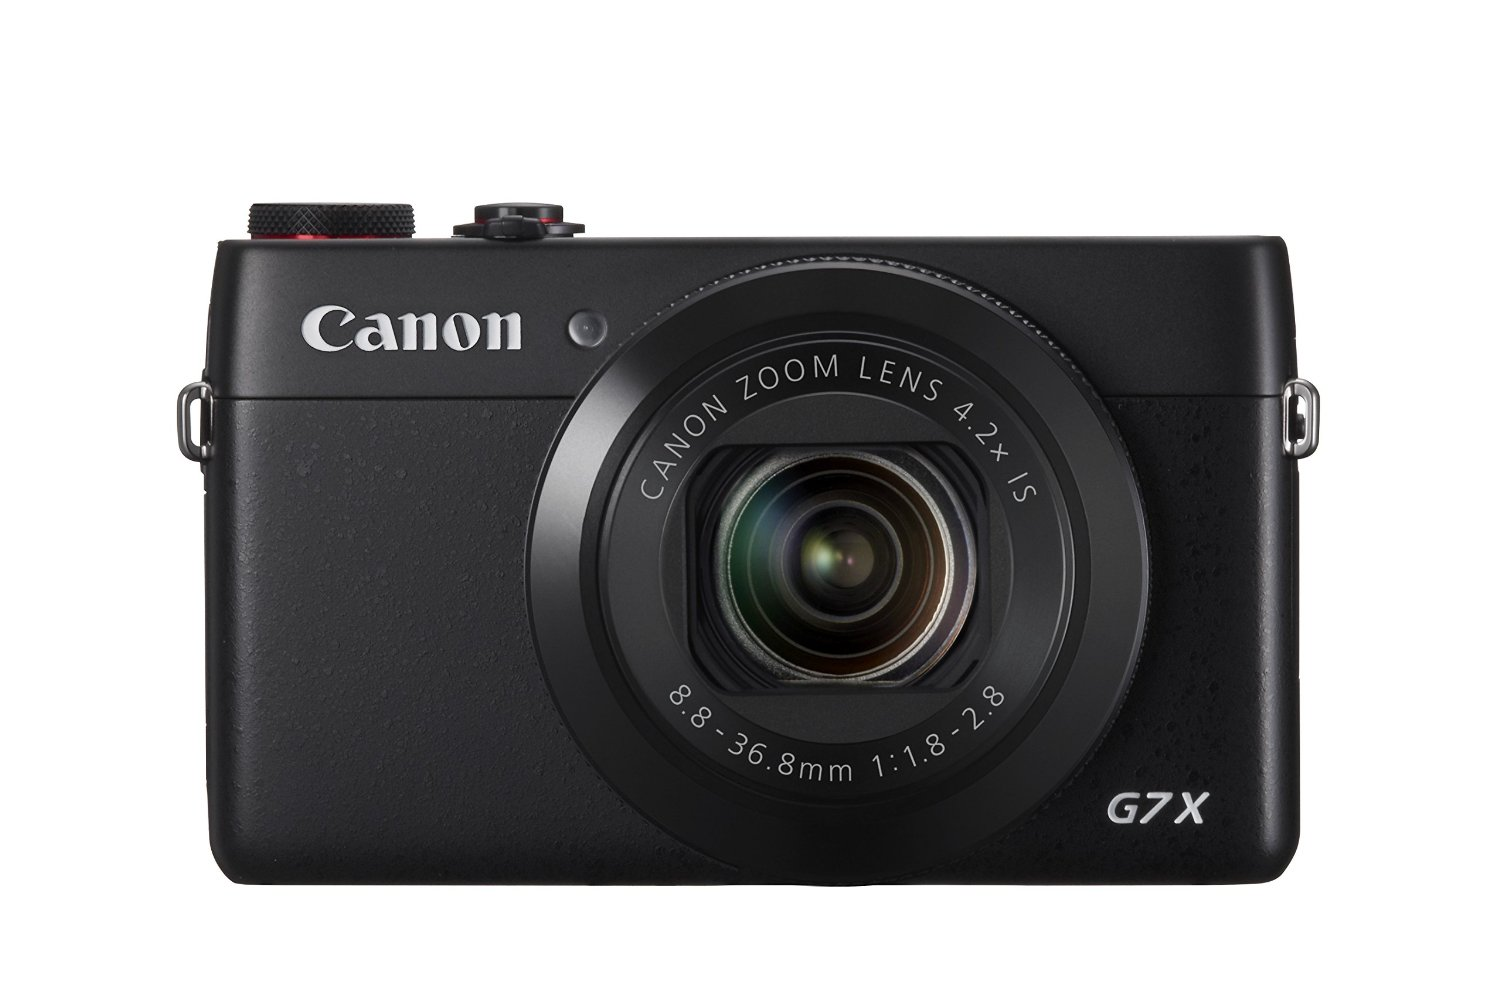 Canon PowerShot G7 X: Powerful Compact Camera Image